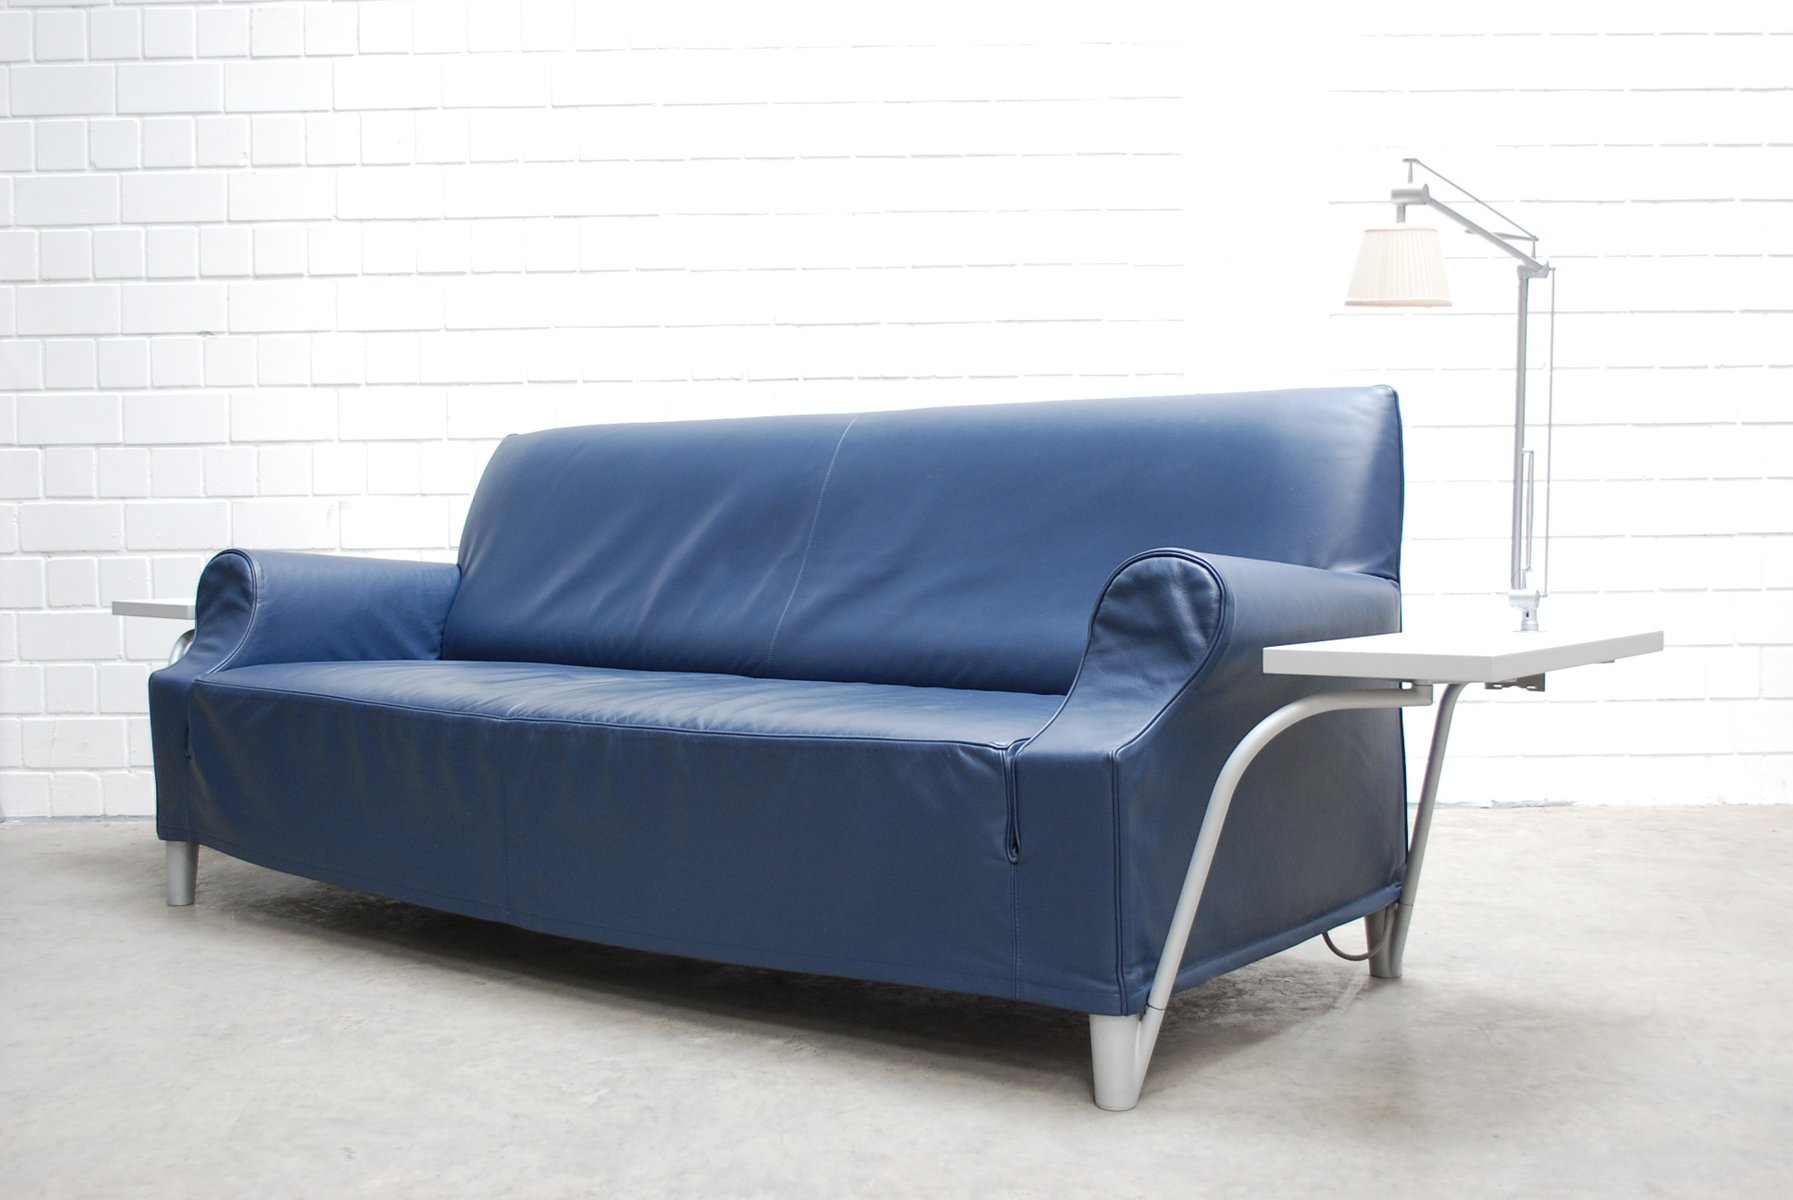 Vintage Lazy Working Sofa By Philippe Starck For Cina